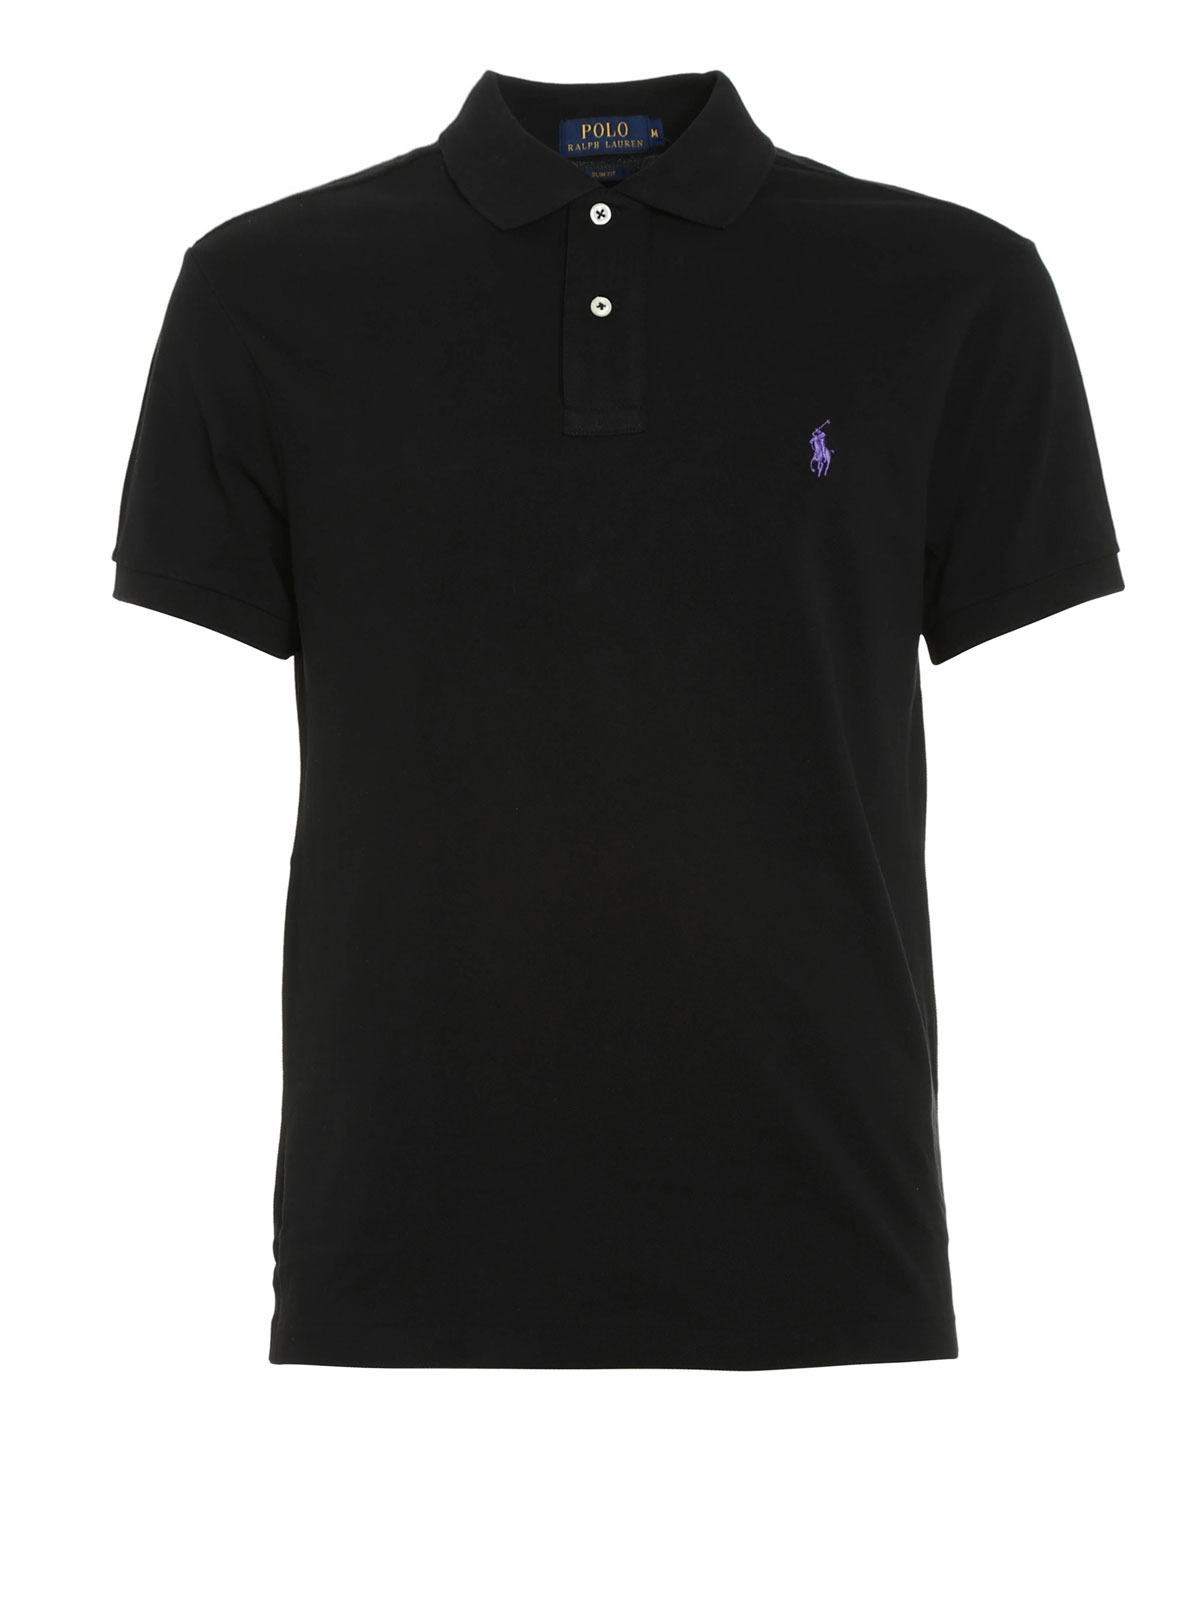 cotton pique polo shirt by polo ralph lauren polo shirts. Black Bedroom Furniture Sets. Home Design Ideas